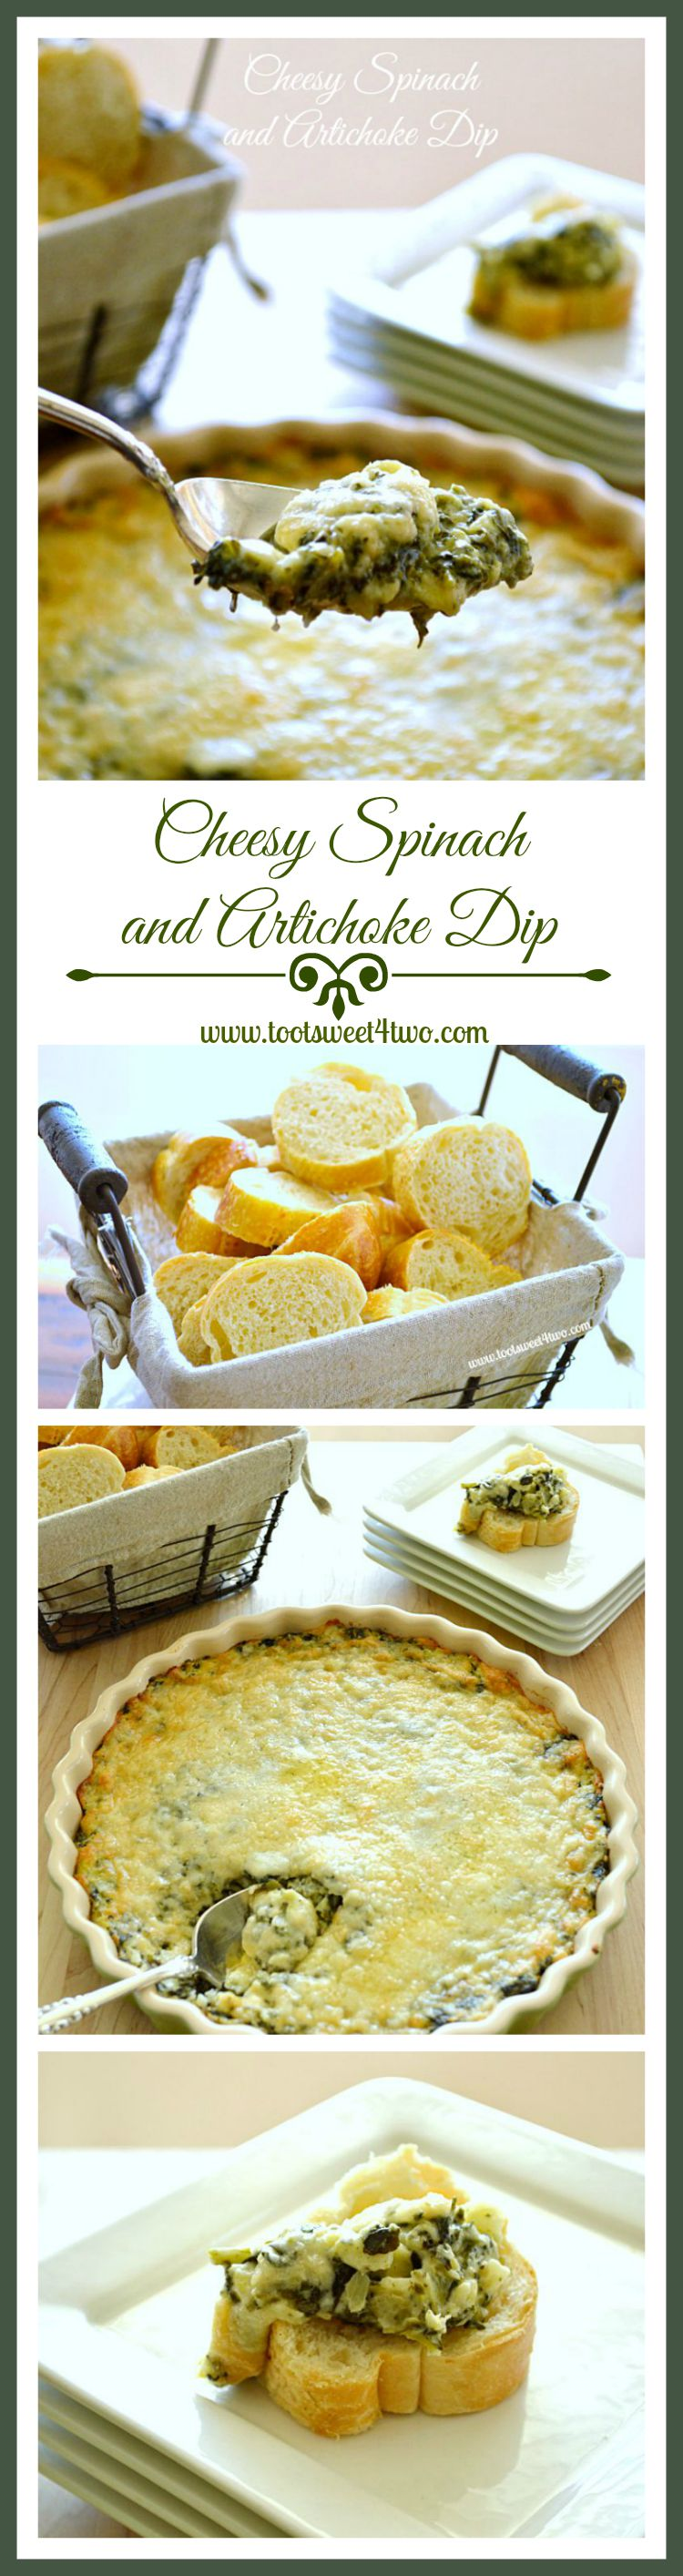 Cheesy Spinach and Artichoke Dip Pinterest